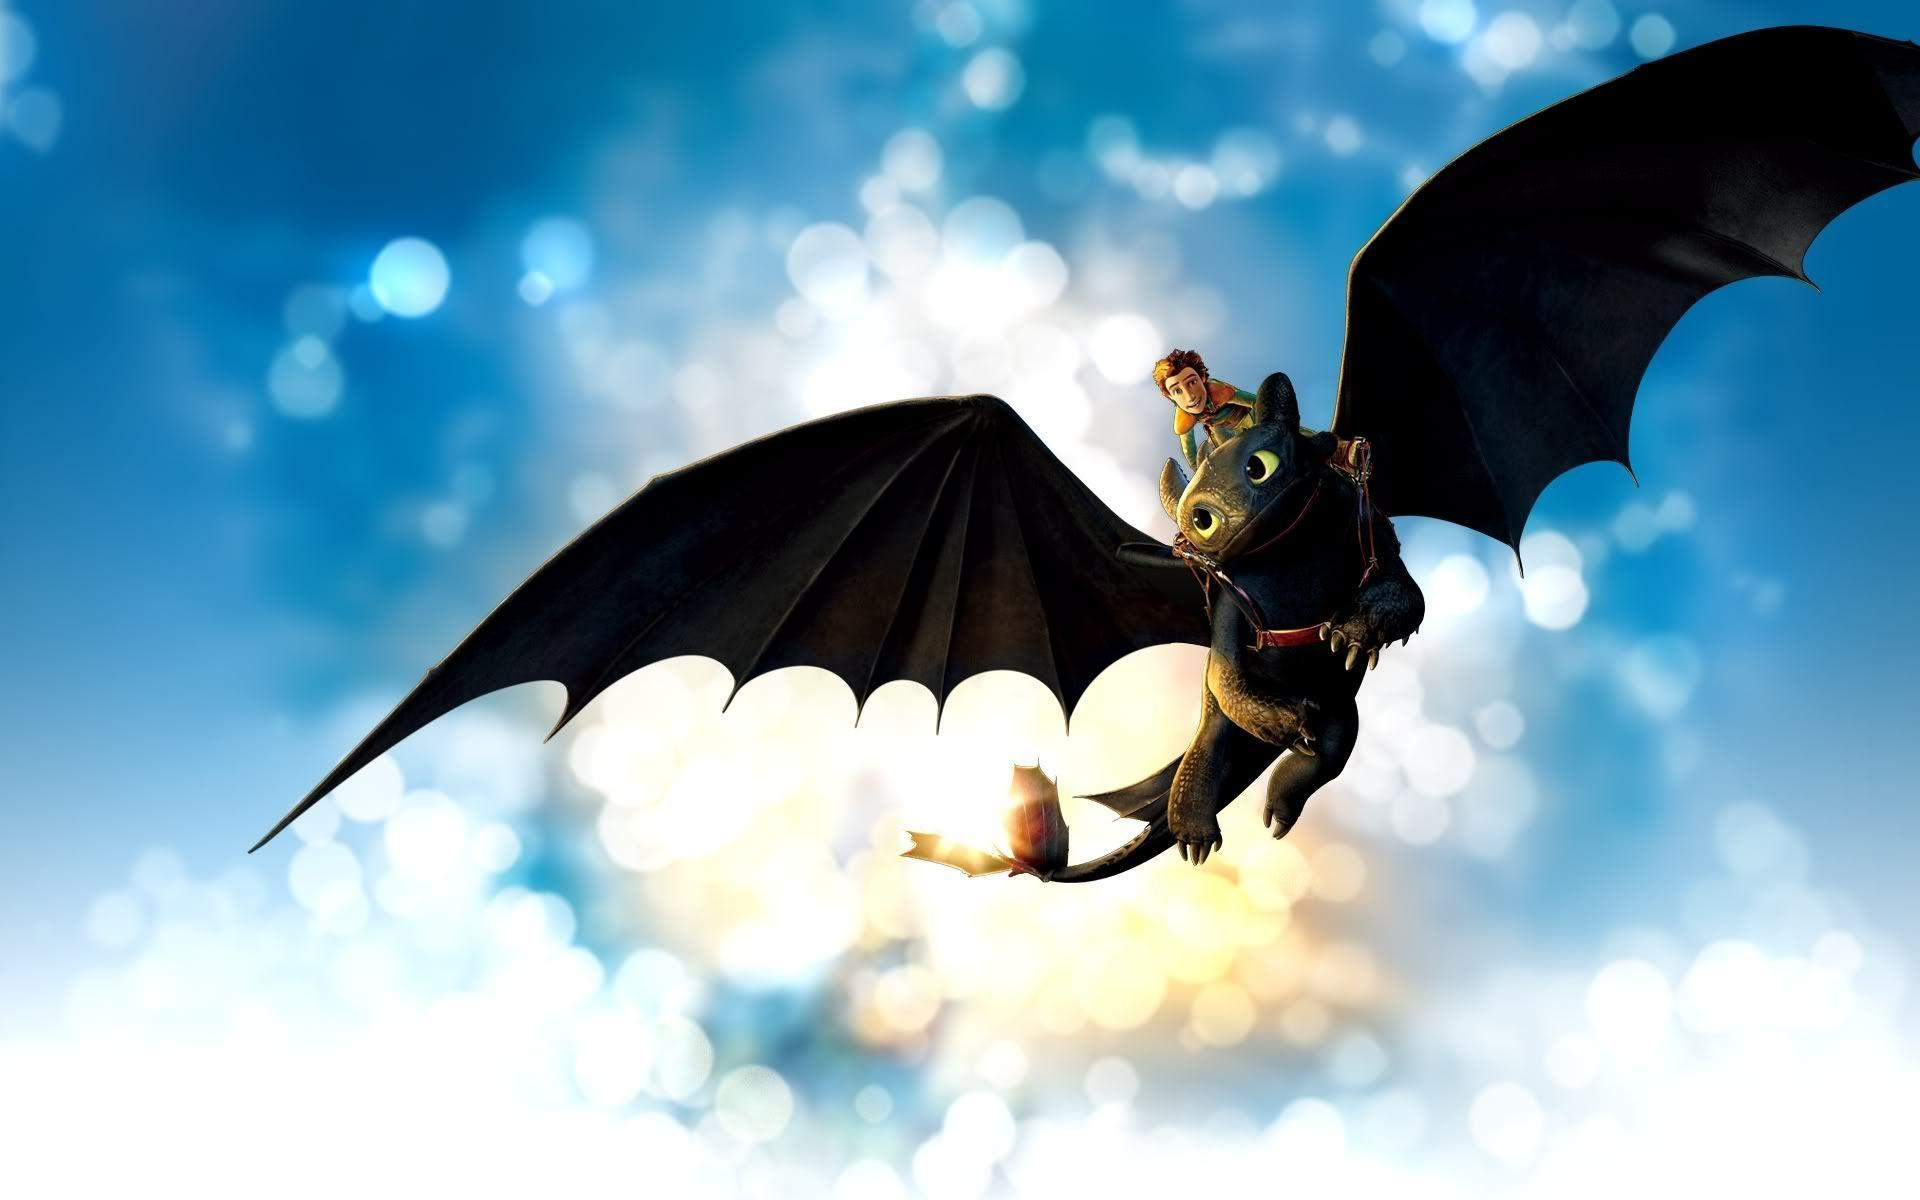 Toothless Wallpapers - Full HD wallpaper search